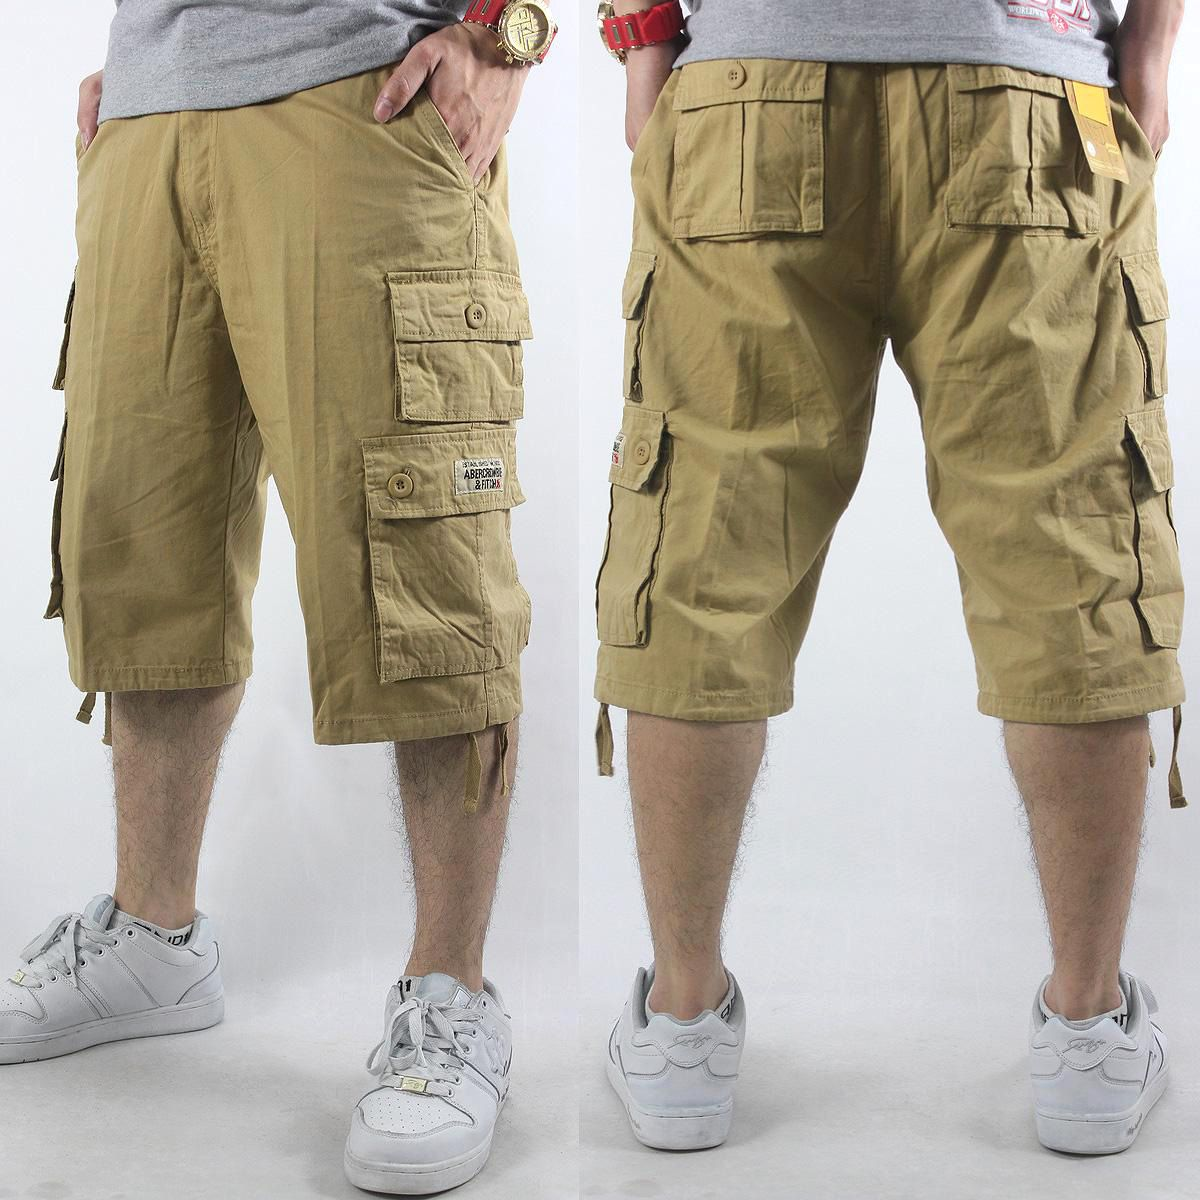 Best Mens Cargo Shorts Pictures | Cargo short, Men's fashion and ...